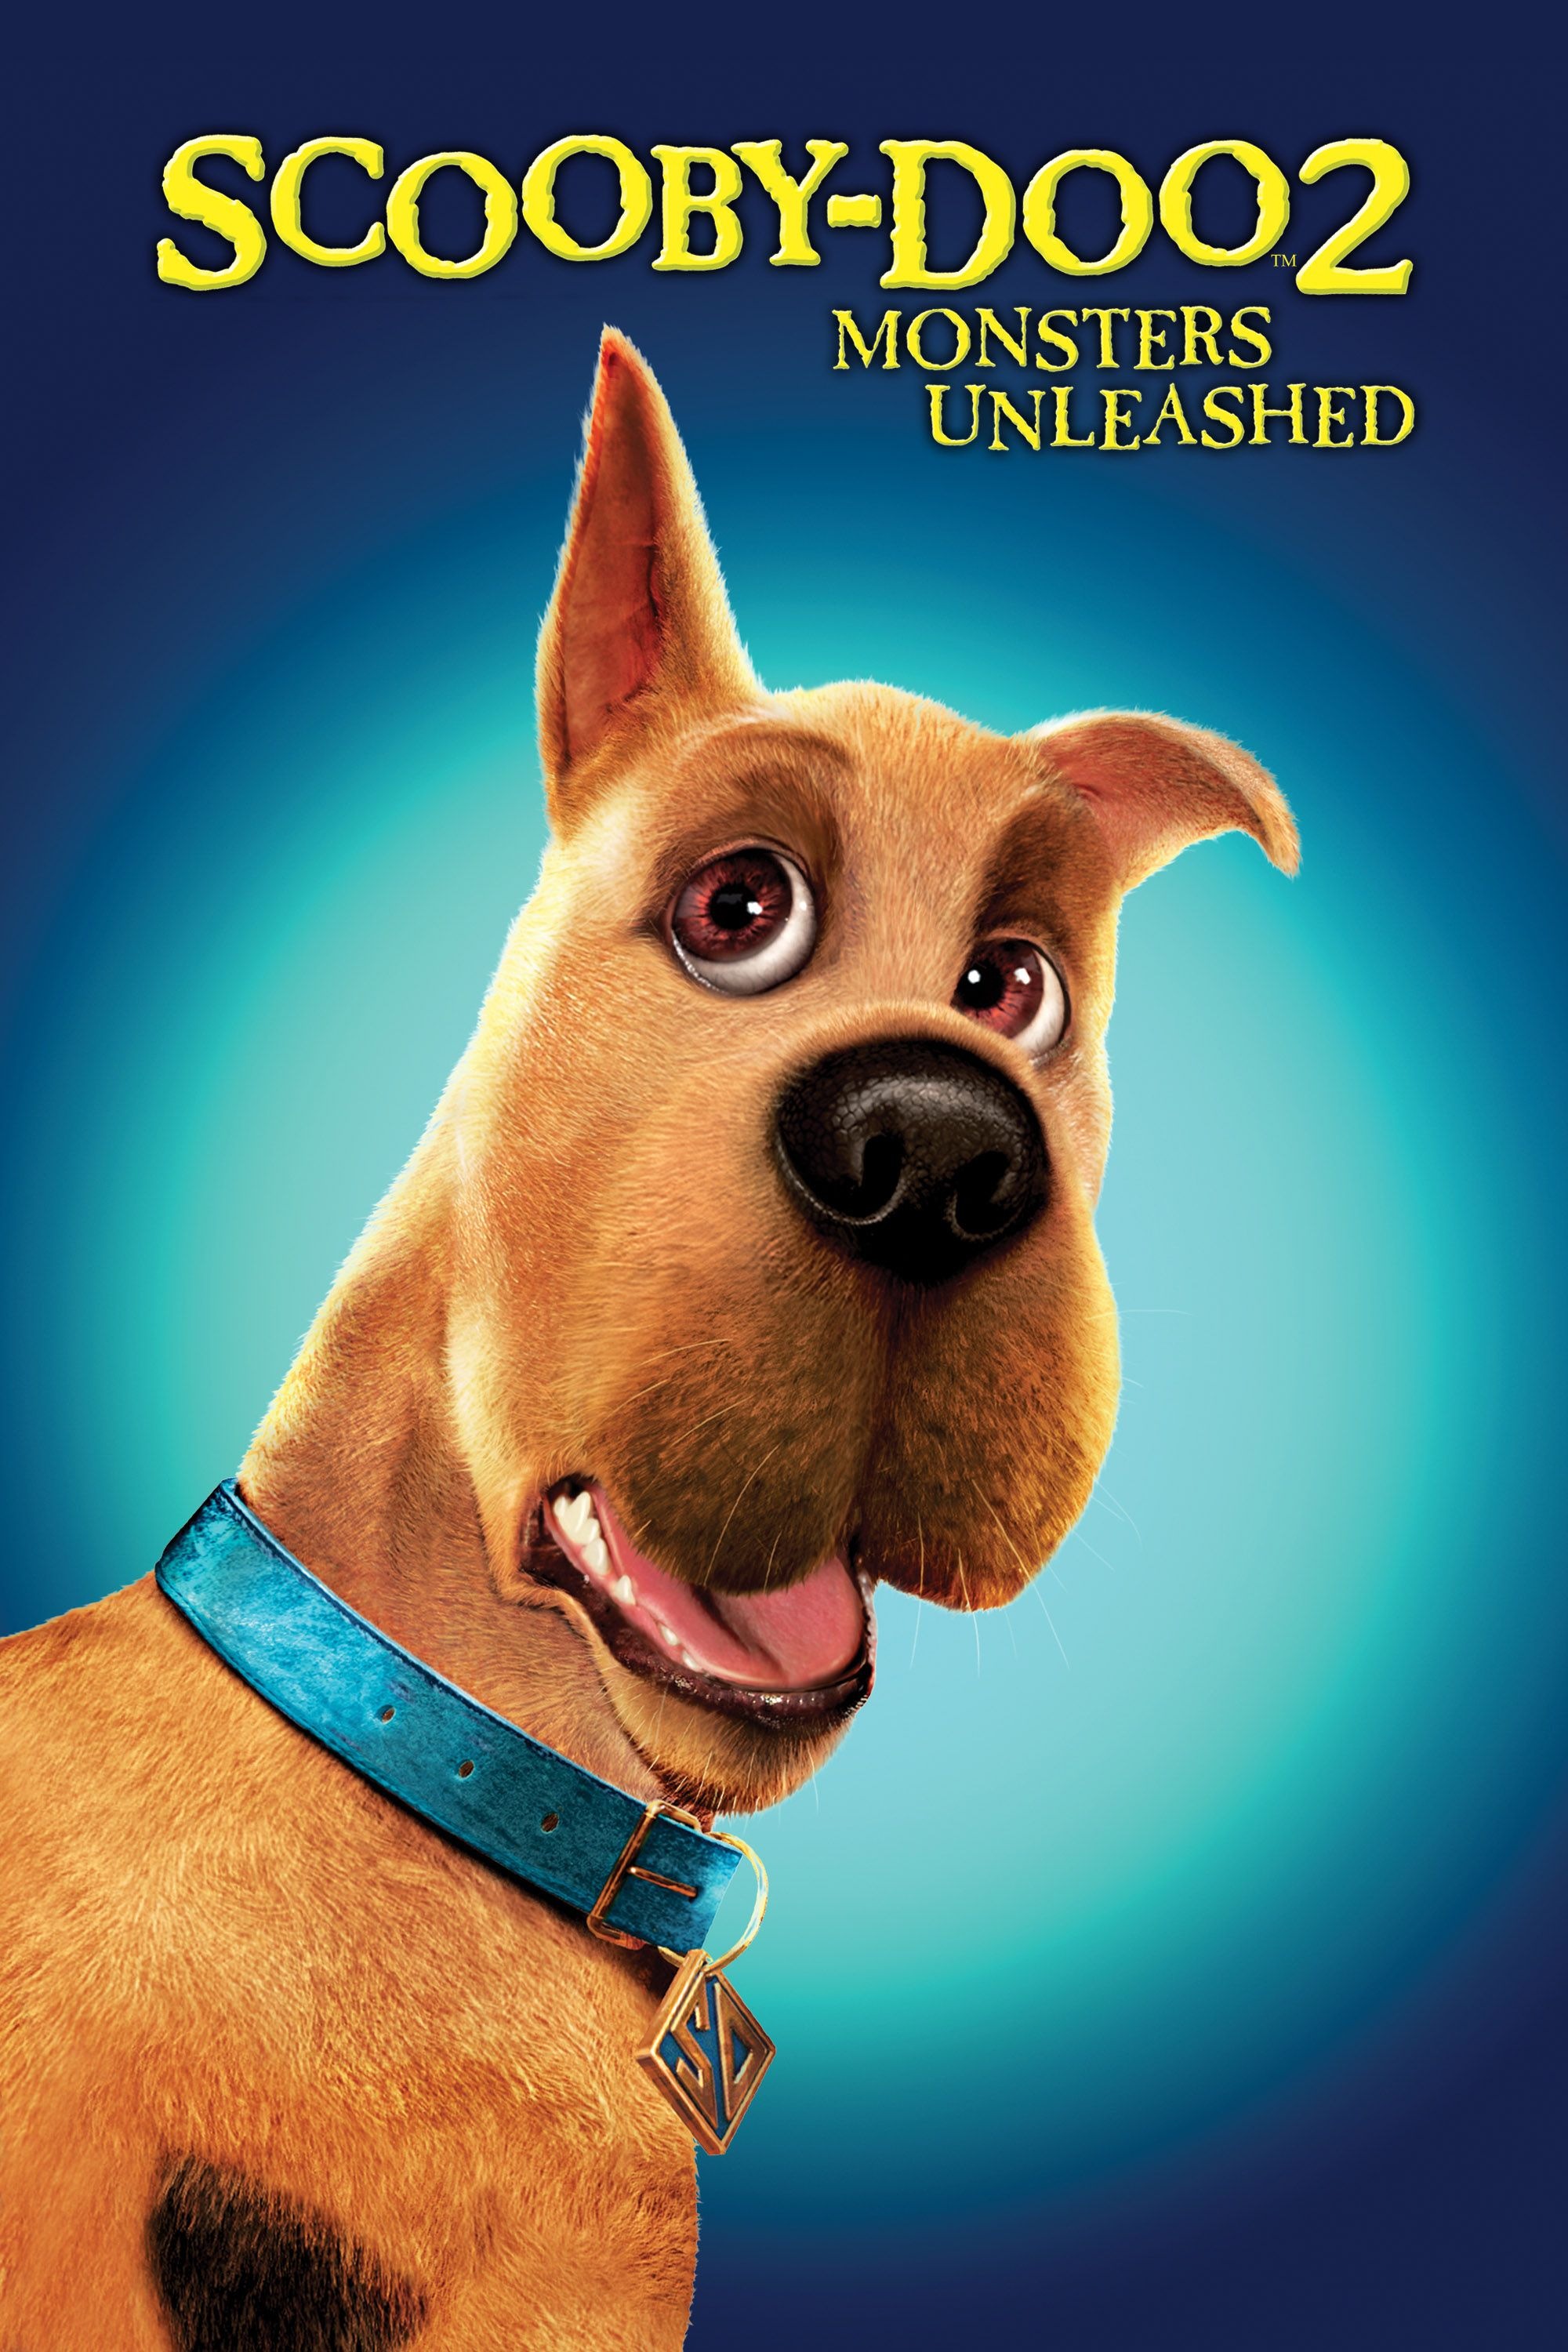 Scooby Doo 2 Monsters Unleashed Full Movie Movies Anywhere